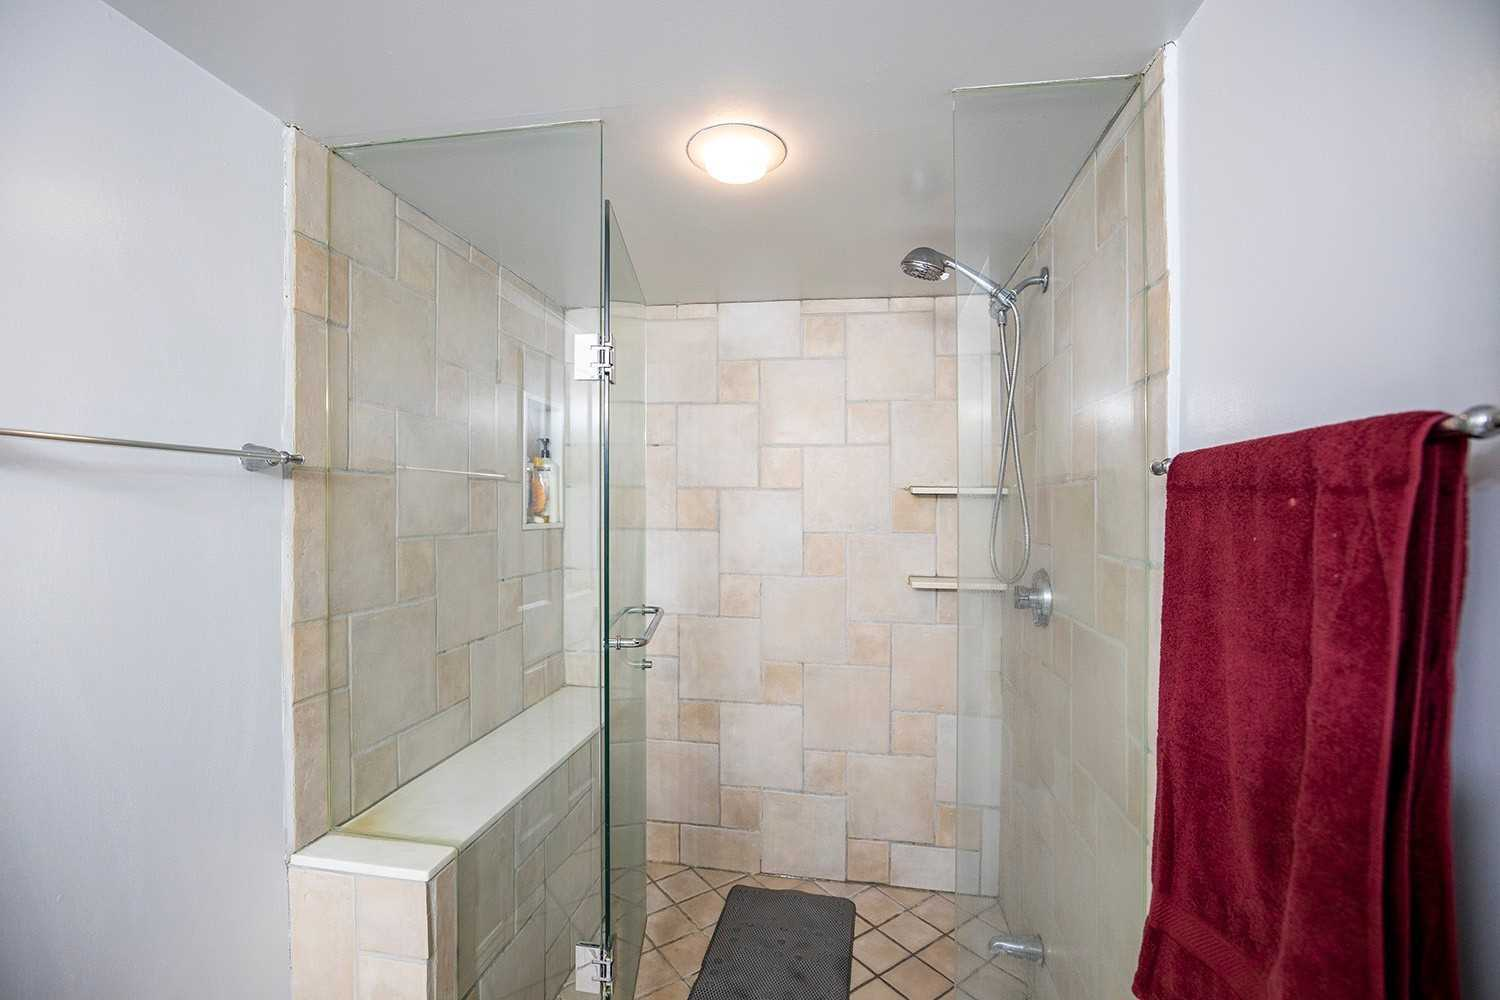 Image 5 of 20 showing inside of 2 Bedroom Condo Apt 2-Storey for Sale at 25 Cumberland Lane Unit# 112, Ajax L1S7K1